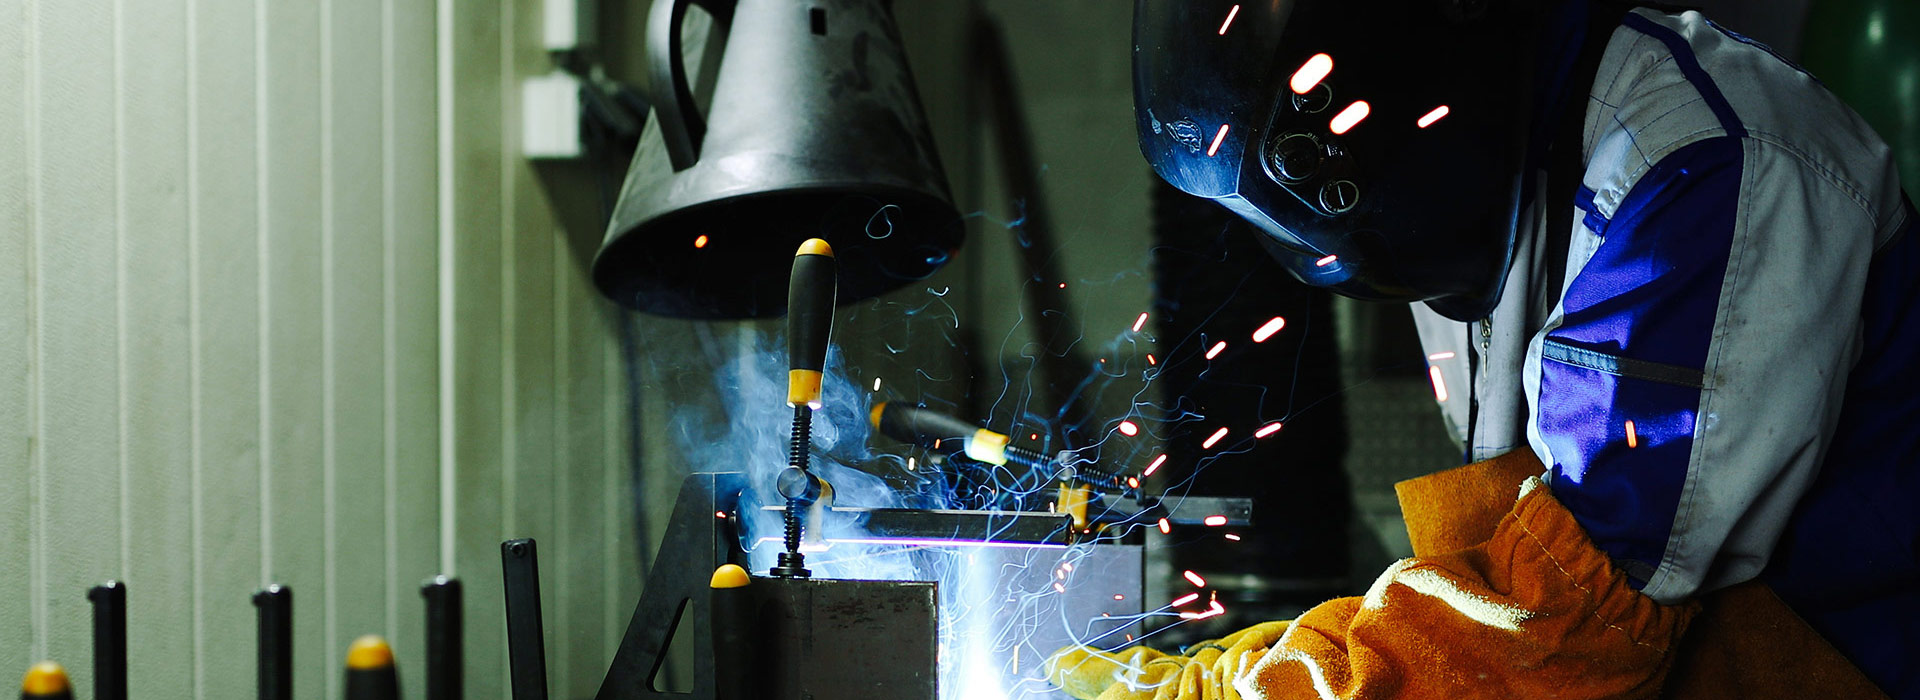 Welding Protection | Delta Health & Safety Equipment